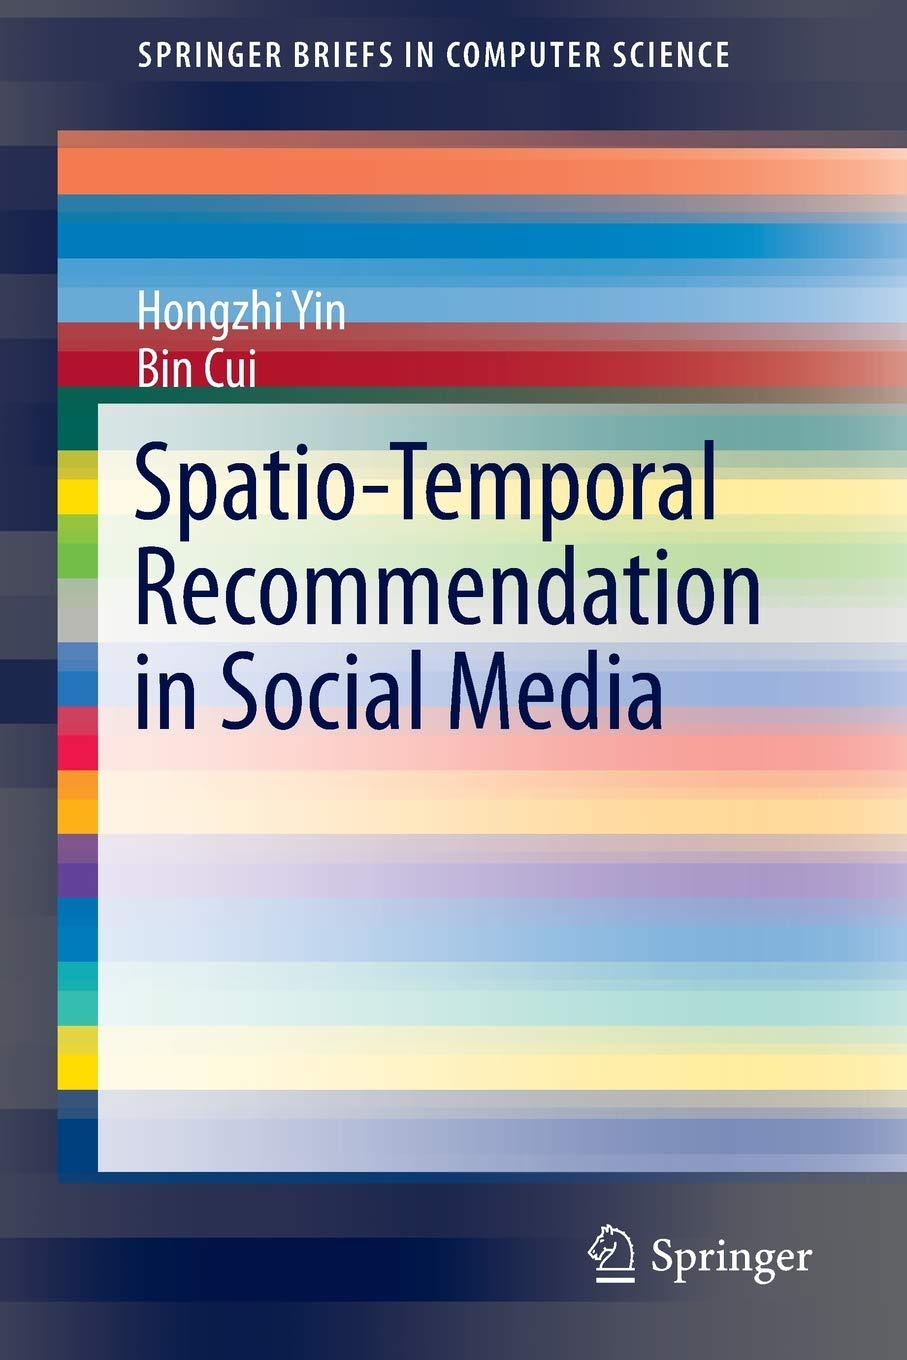 Image OfSpatio-Temporal Recommendation In Social Media